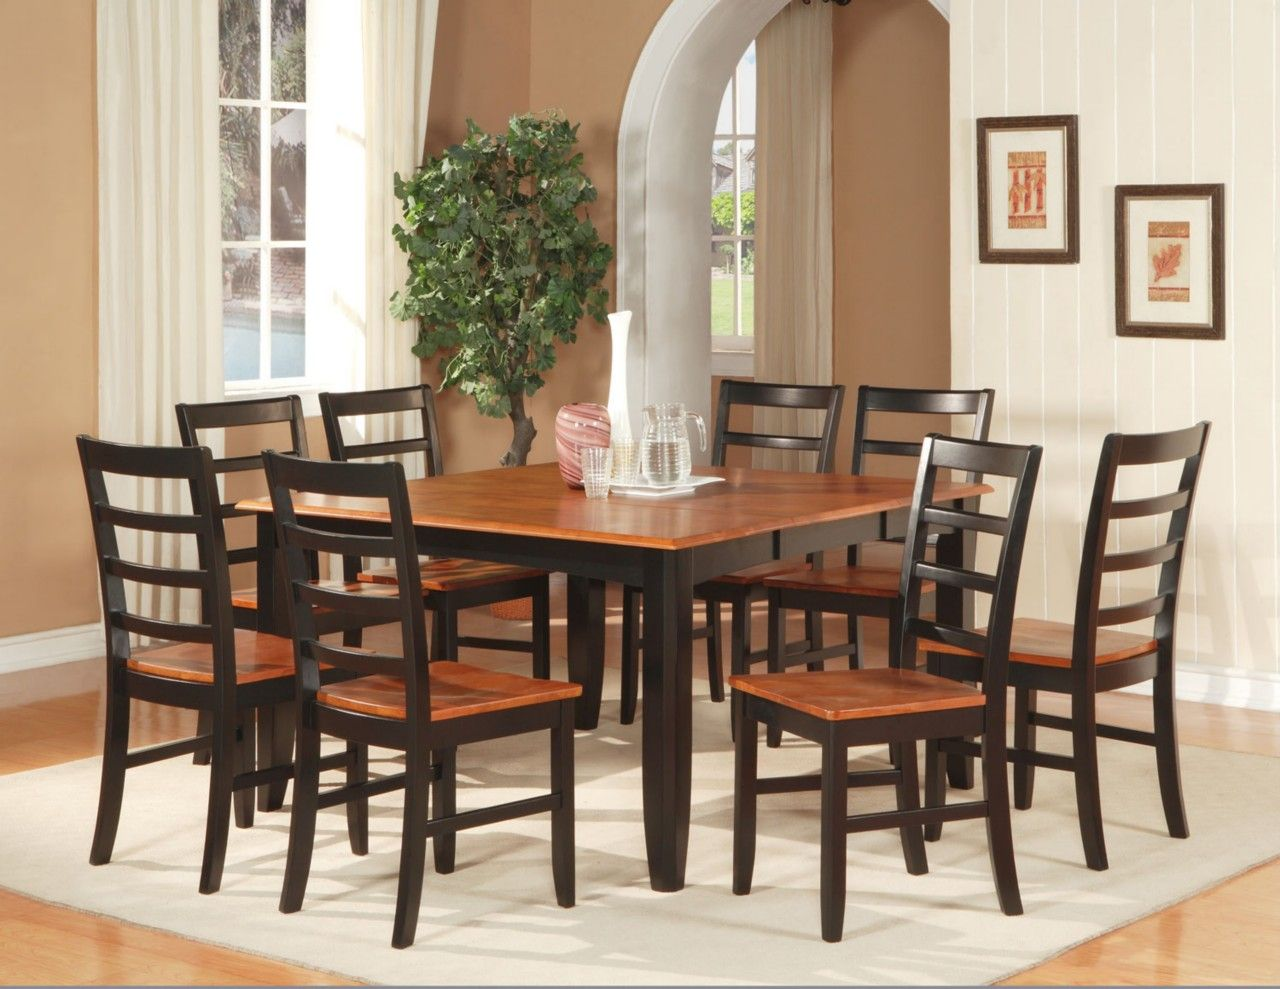 Dining Room Tables – Valuable Information to Get to Know More ...